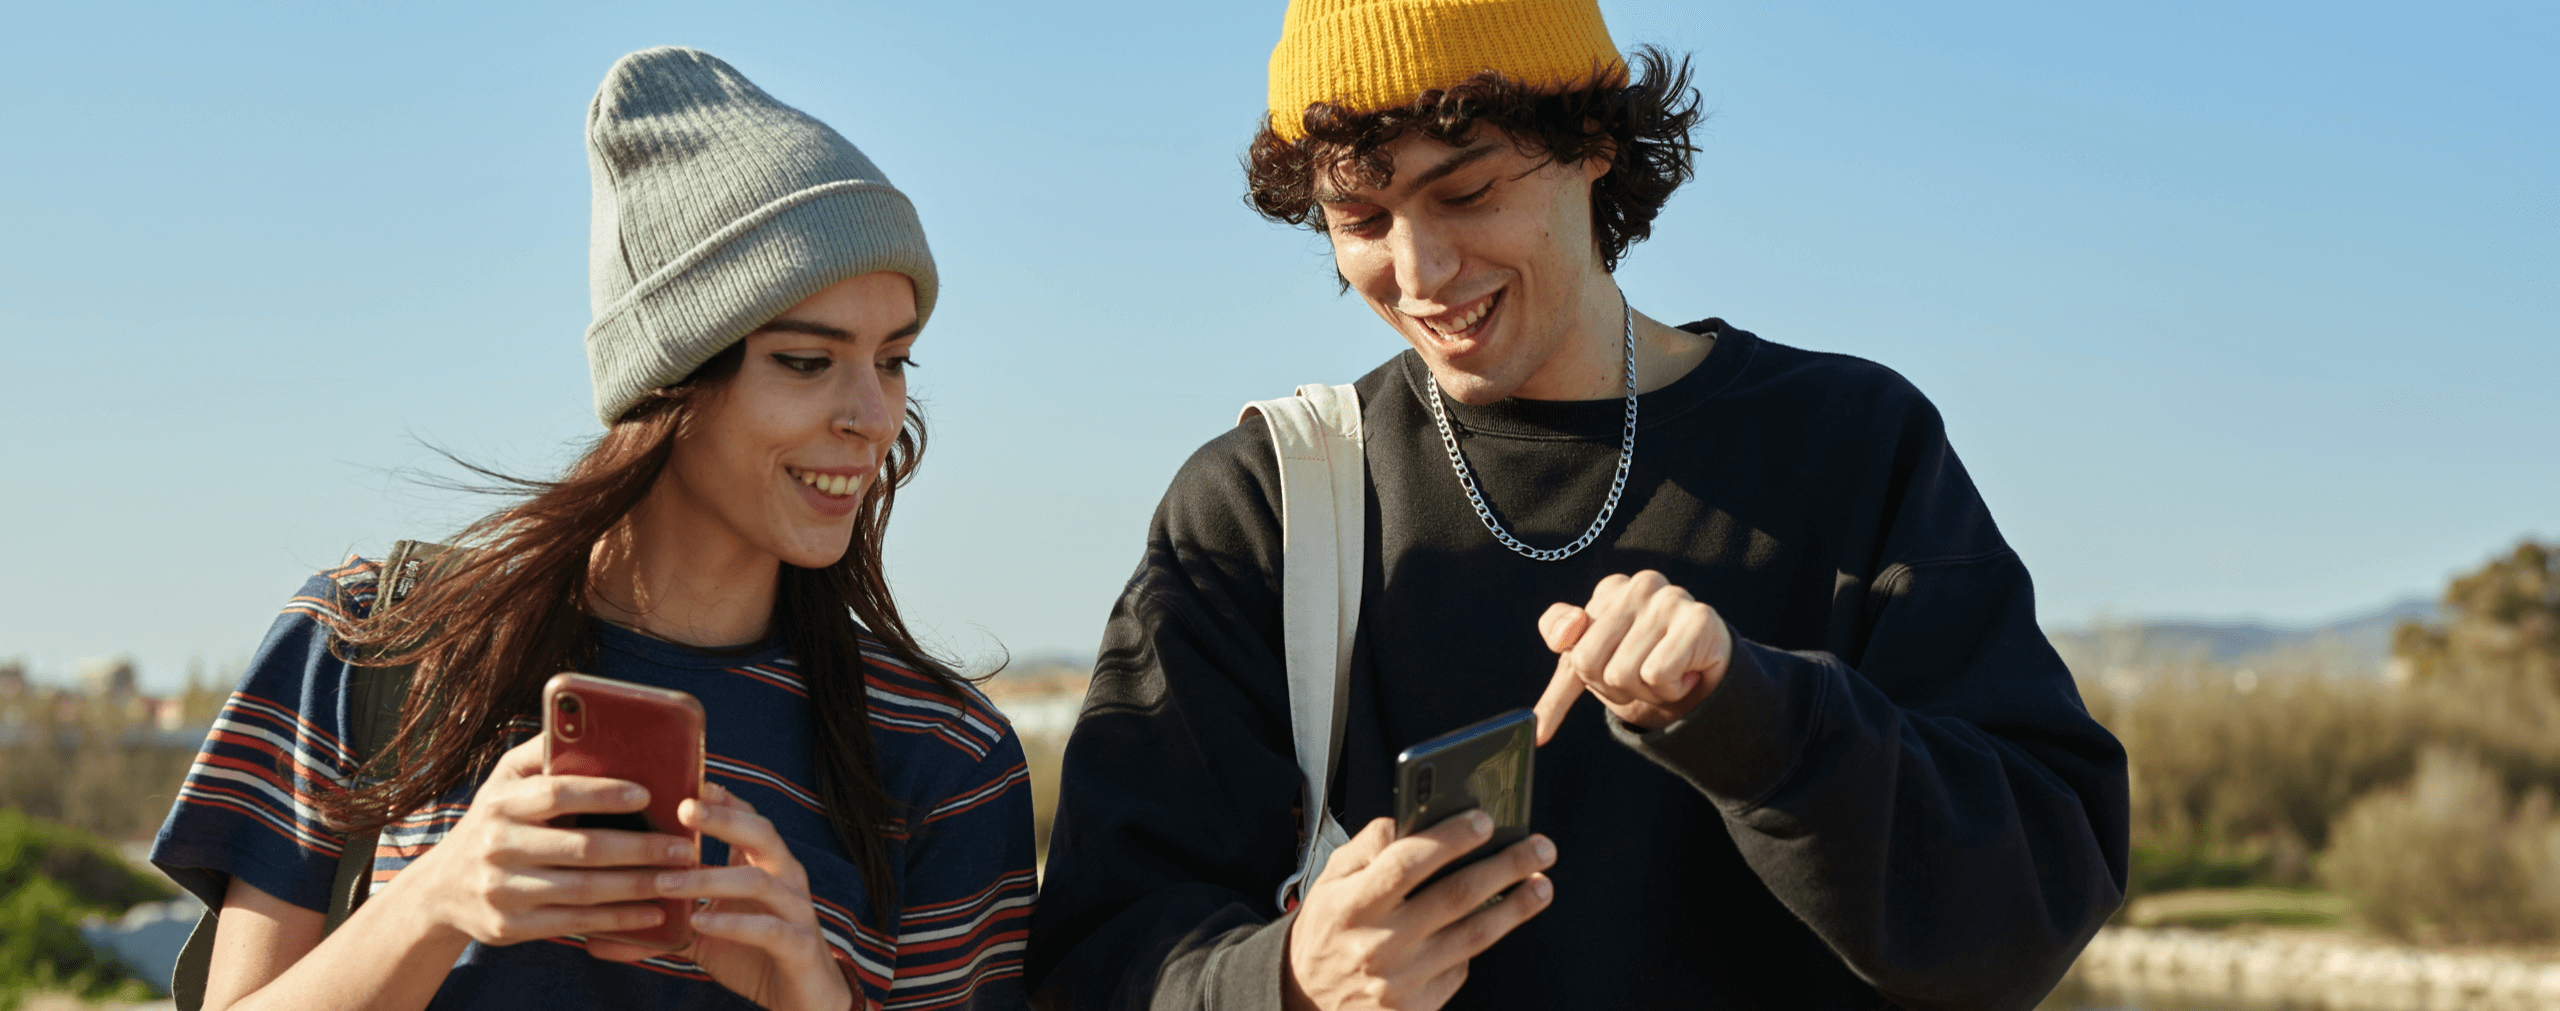 couple engaging with brand authenticity on phones